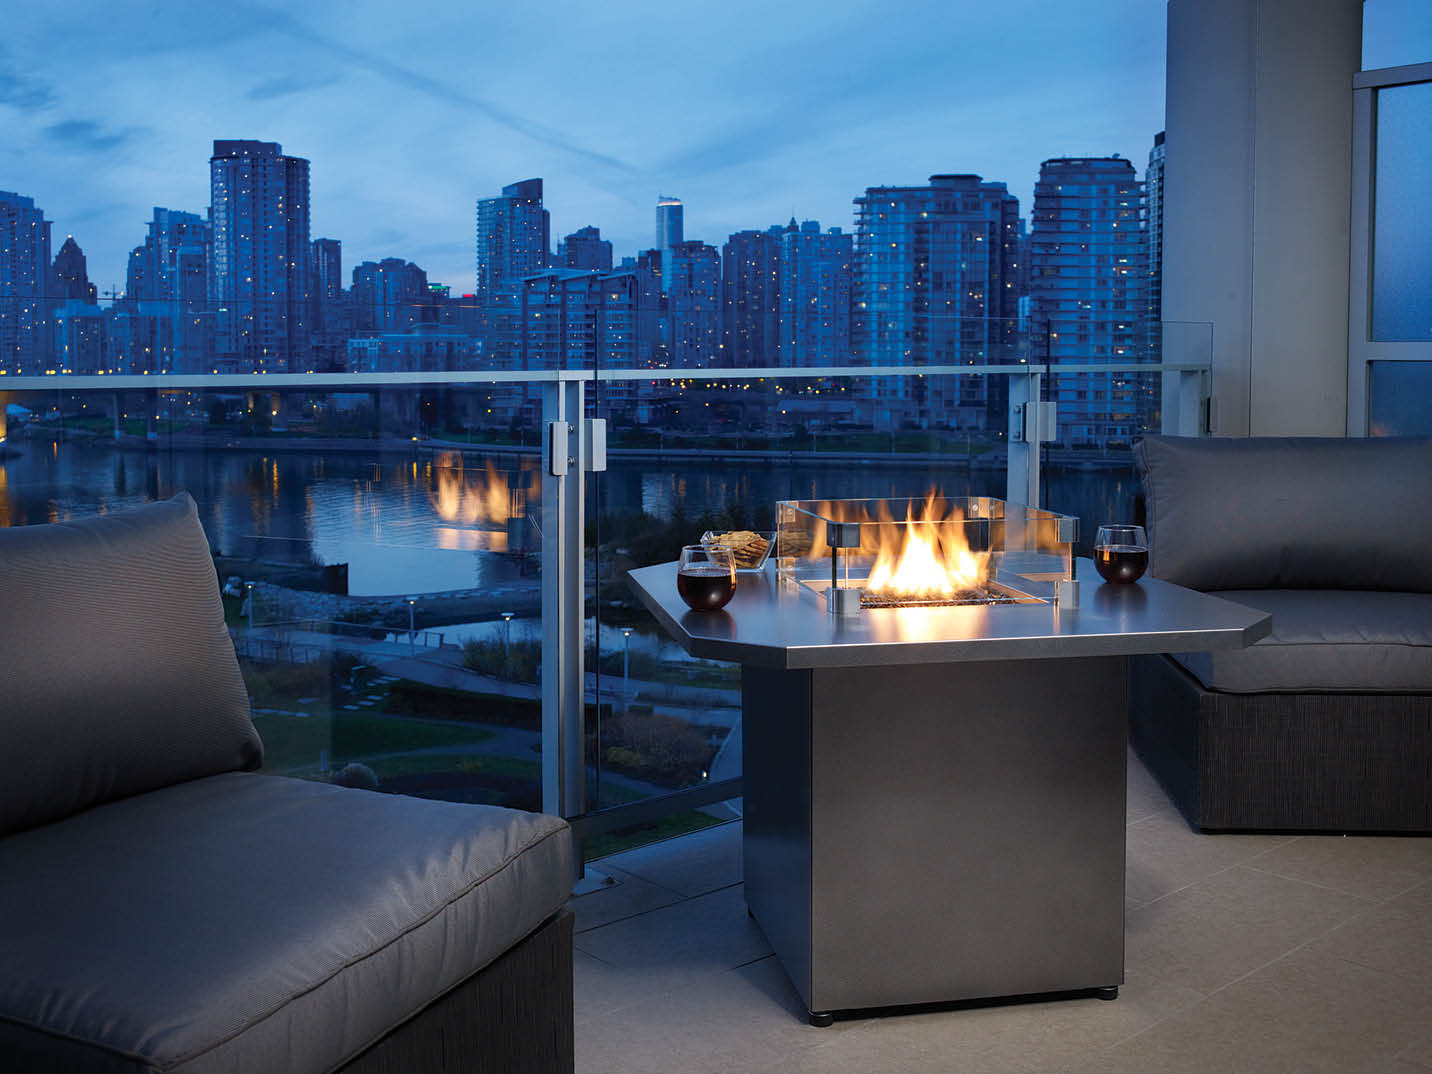 Gorgeous skyline view from a deck with a beautiful table wood stove from Olympic Stove and Spa in Shelton, WA